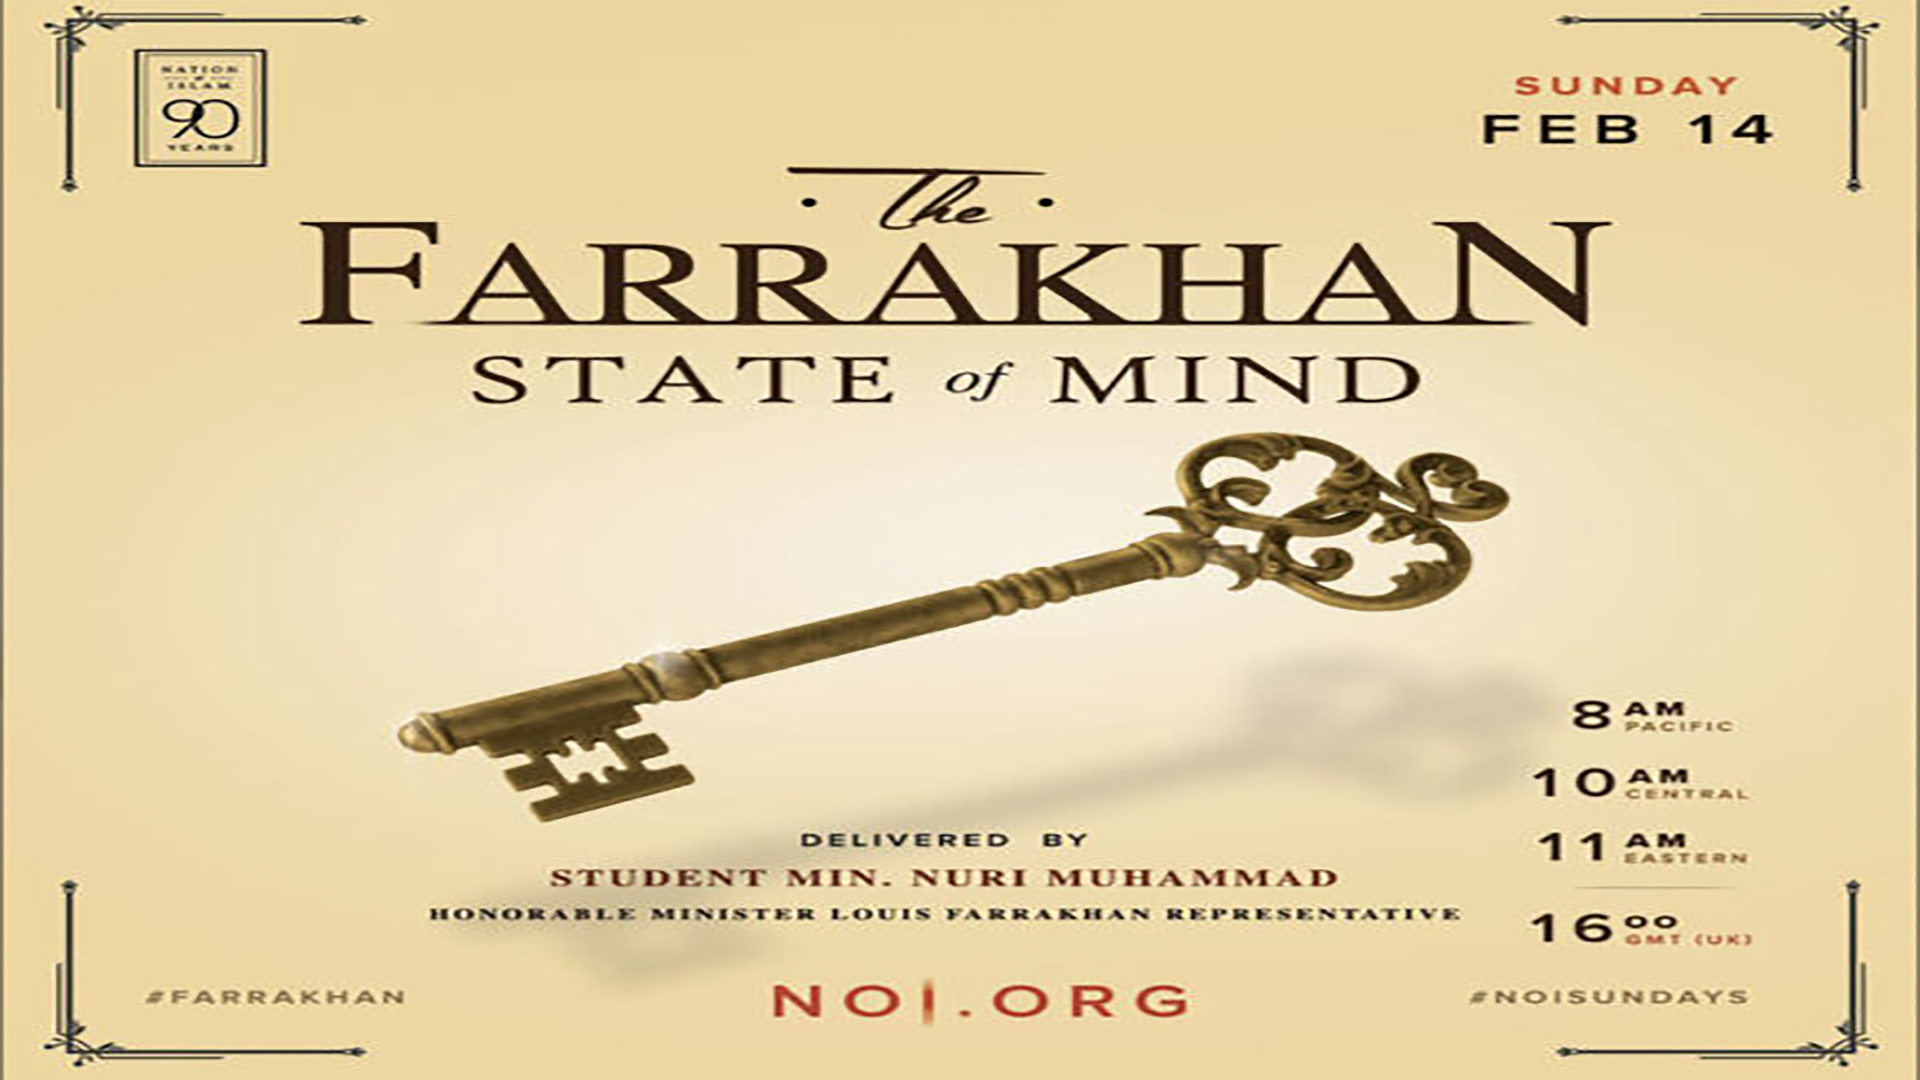 The Farrakhan State of Mind